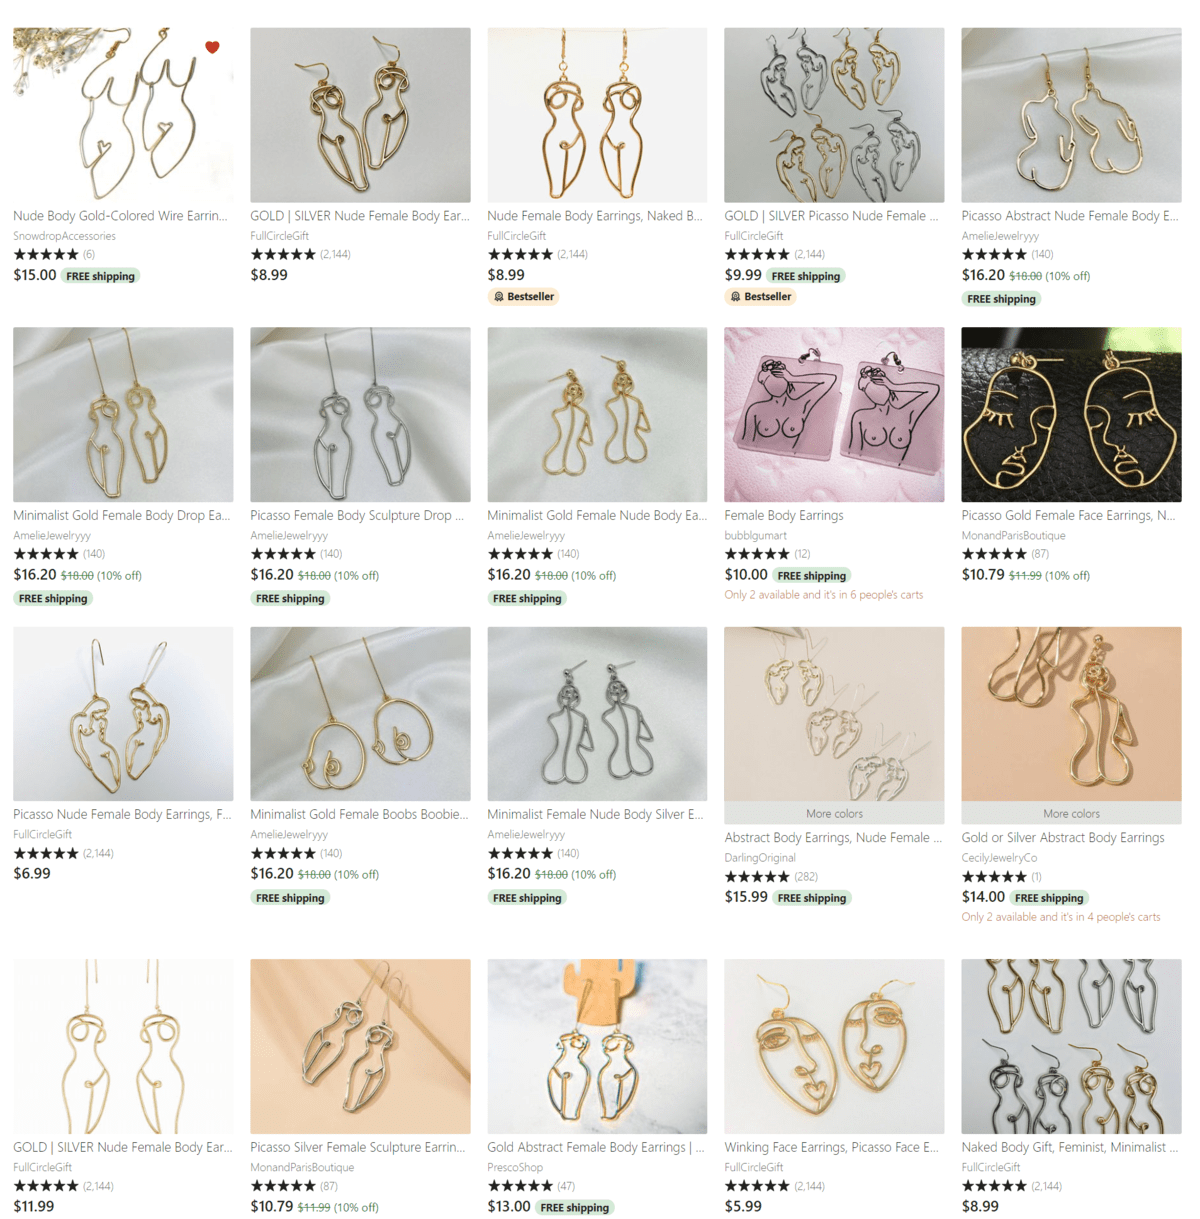 Search results for 'body earrings' on Etsy with many duplicate designs